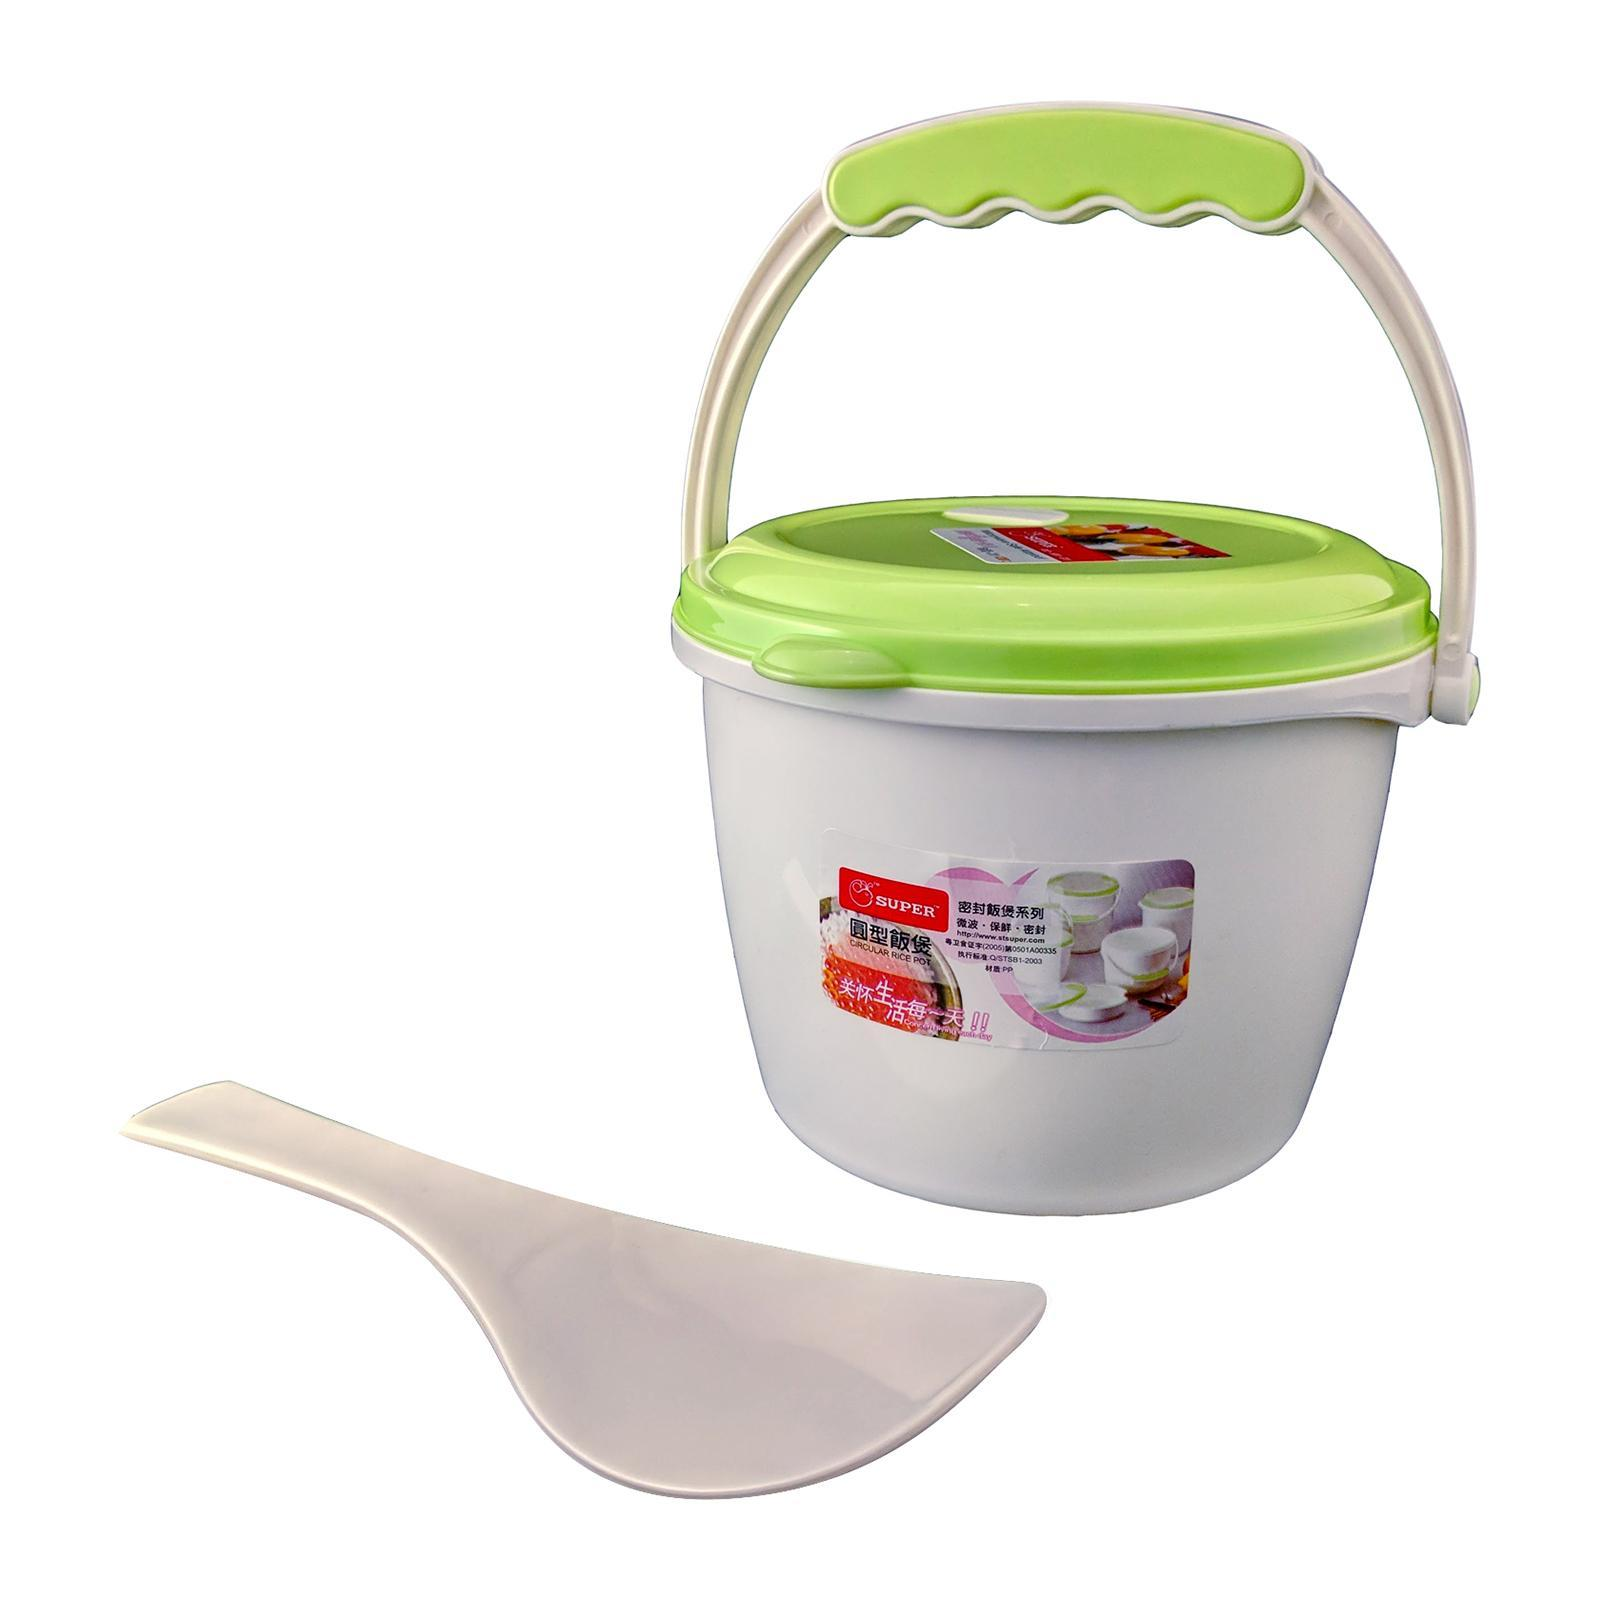 Sitbo Microwave Rice And Food Steamer 14 CM (Green) With Rice Scoop